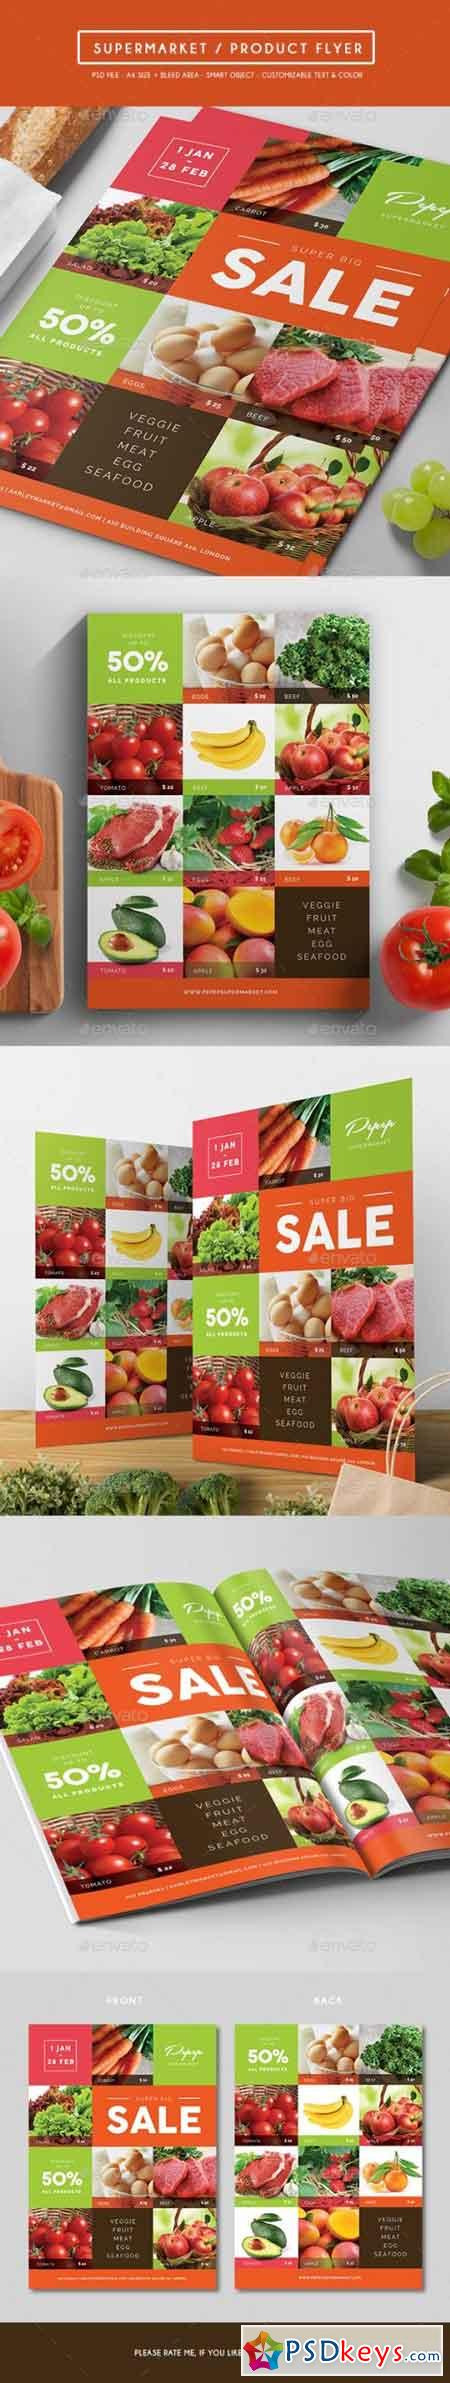 Supermarket Product Flyer 15914834